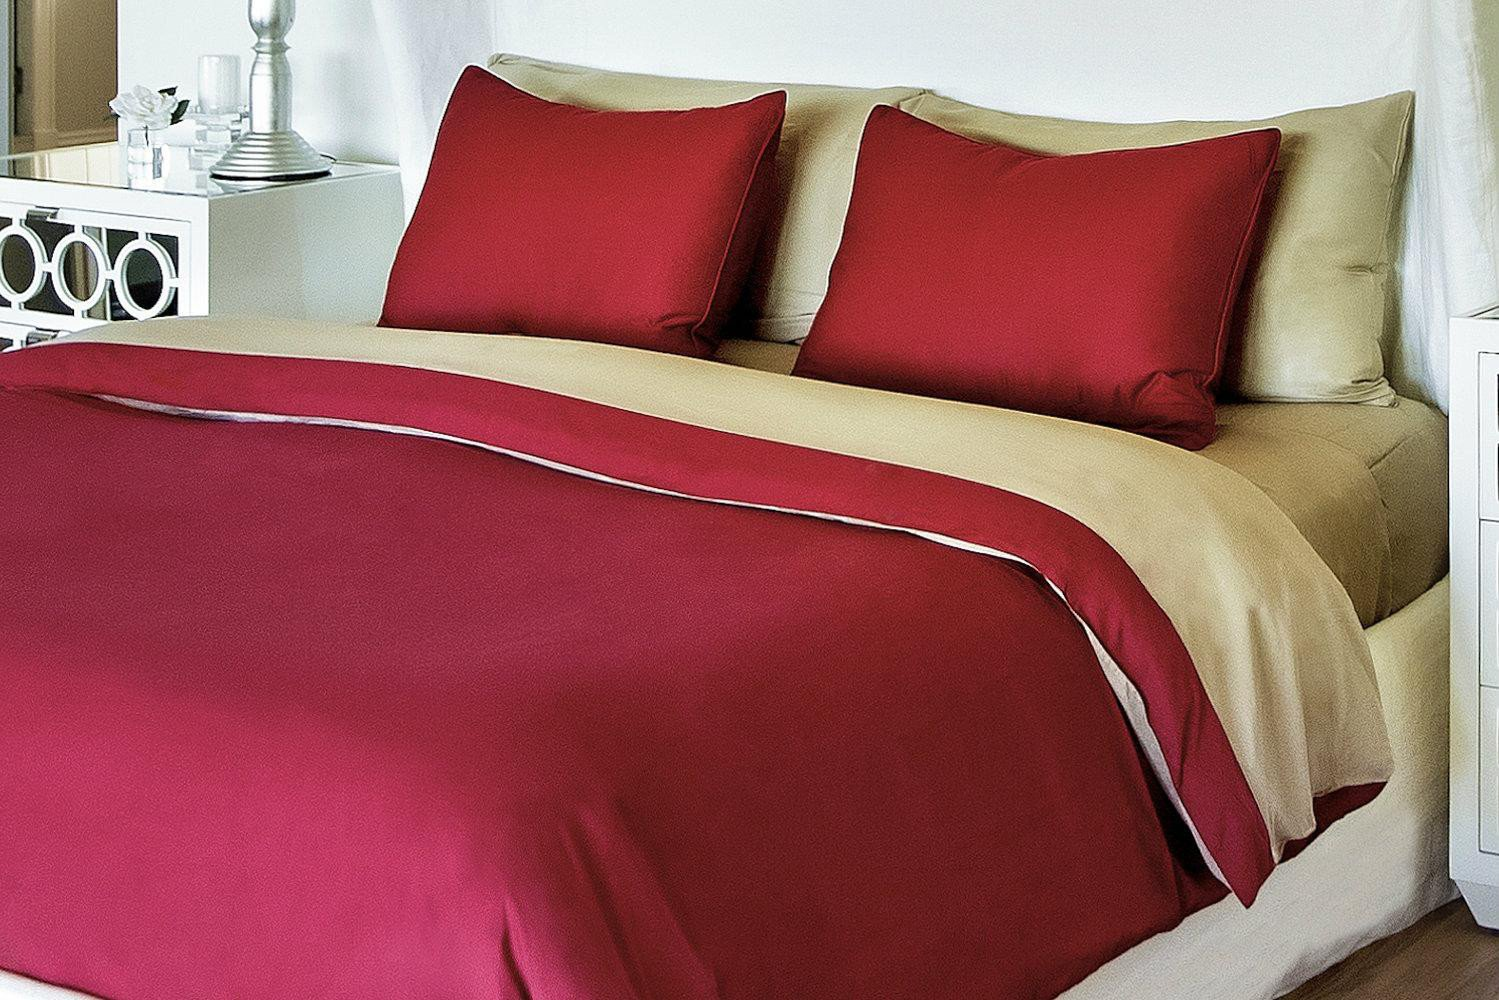 Bedvoyage Decorative Bedding Duvet Cover - Full - Champagne / Cayenne [Reversible] by BedVoyage